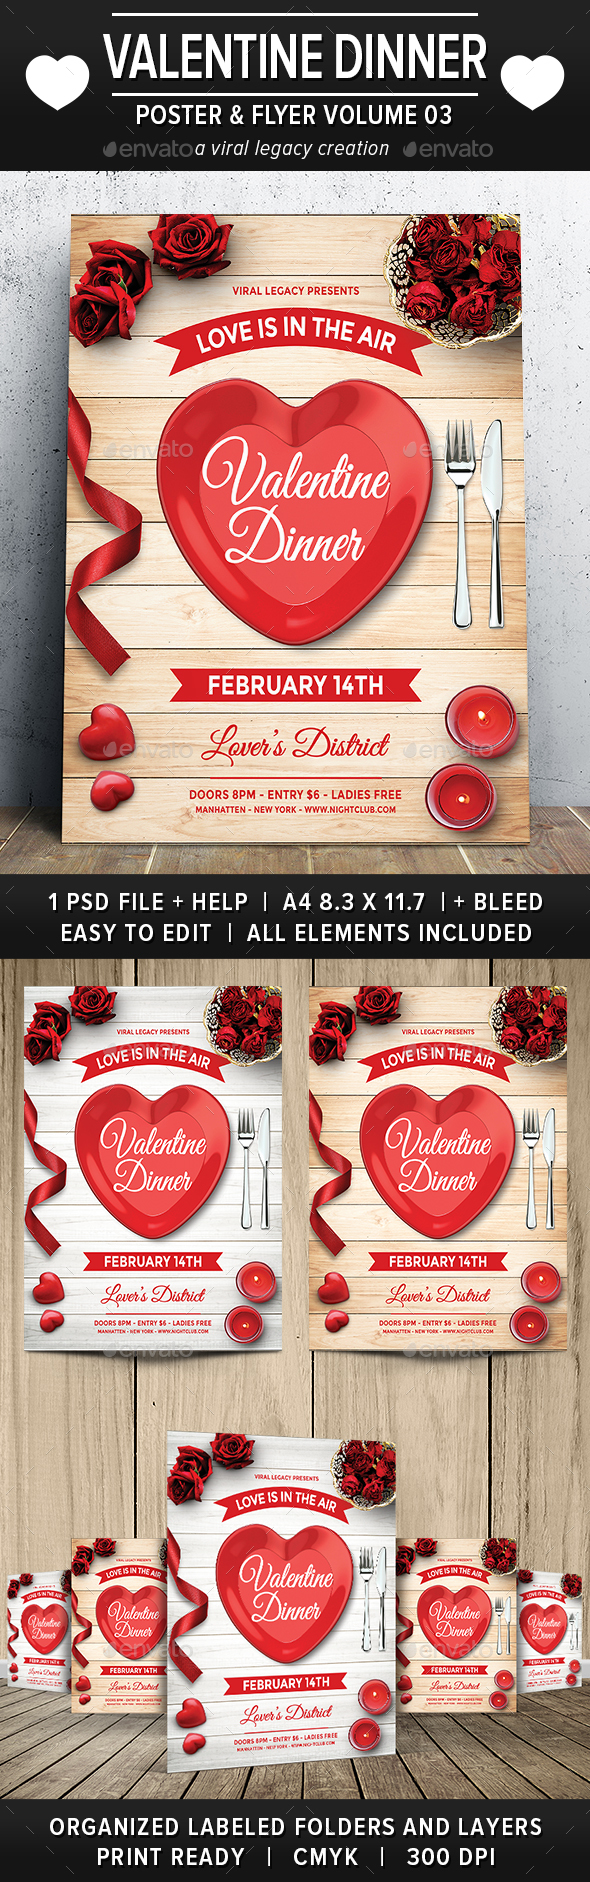 Valentine Dinner Poster / Flyer V03 - Events Flyers